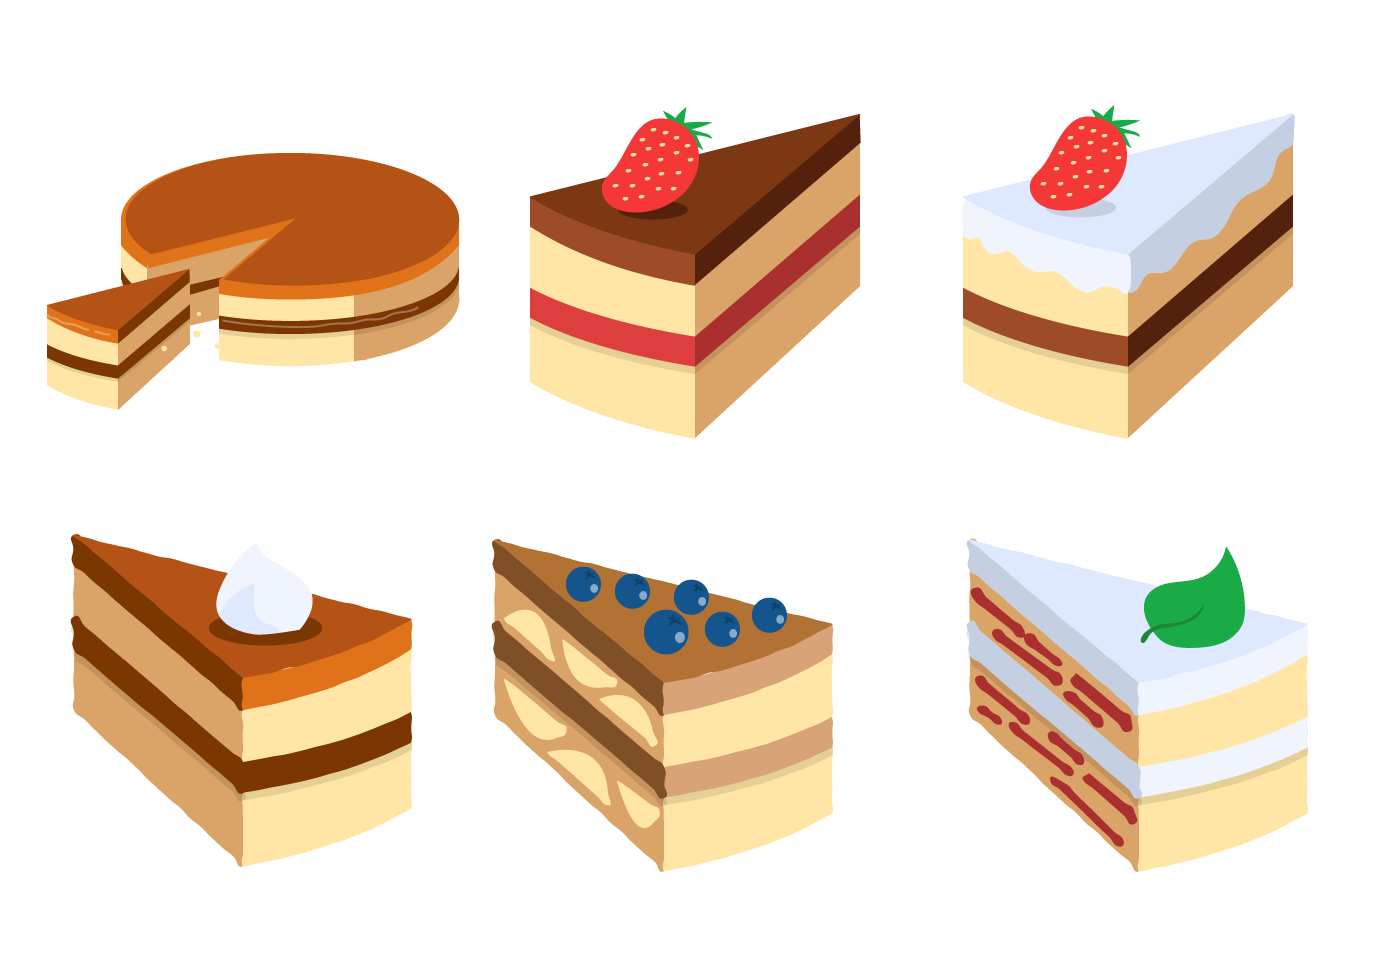 1400x980 Free Png Cakes And Pies Transparent Cakes And Pies.png Images